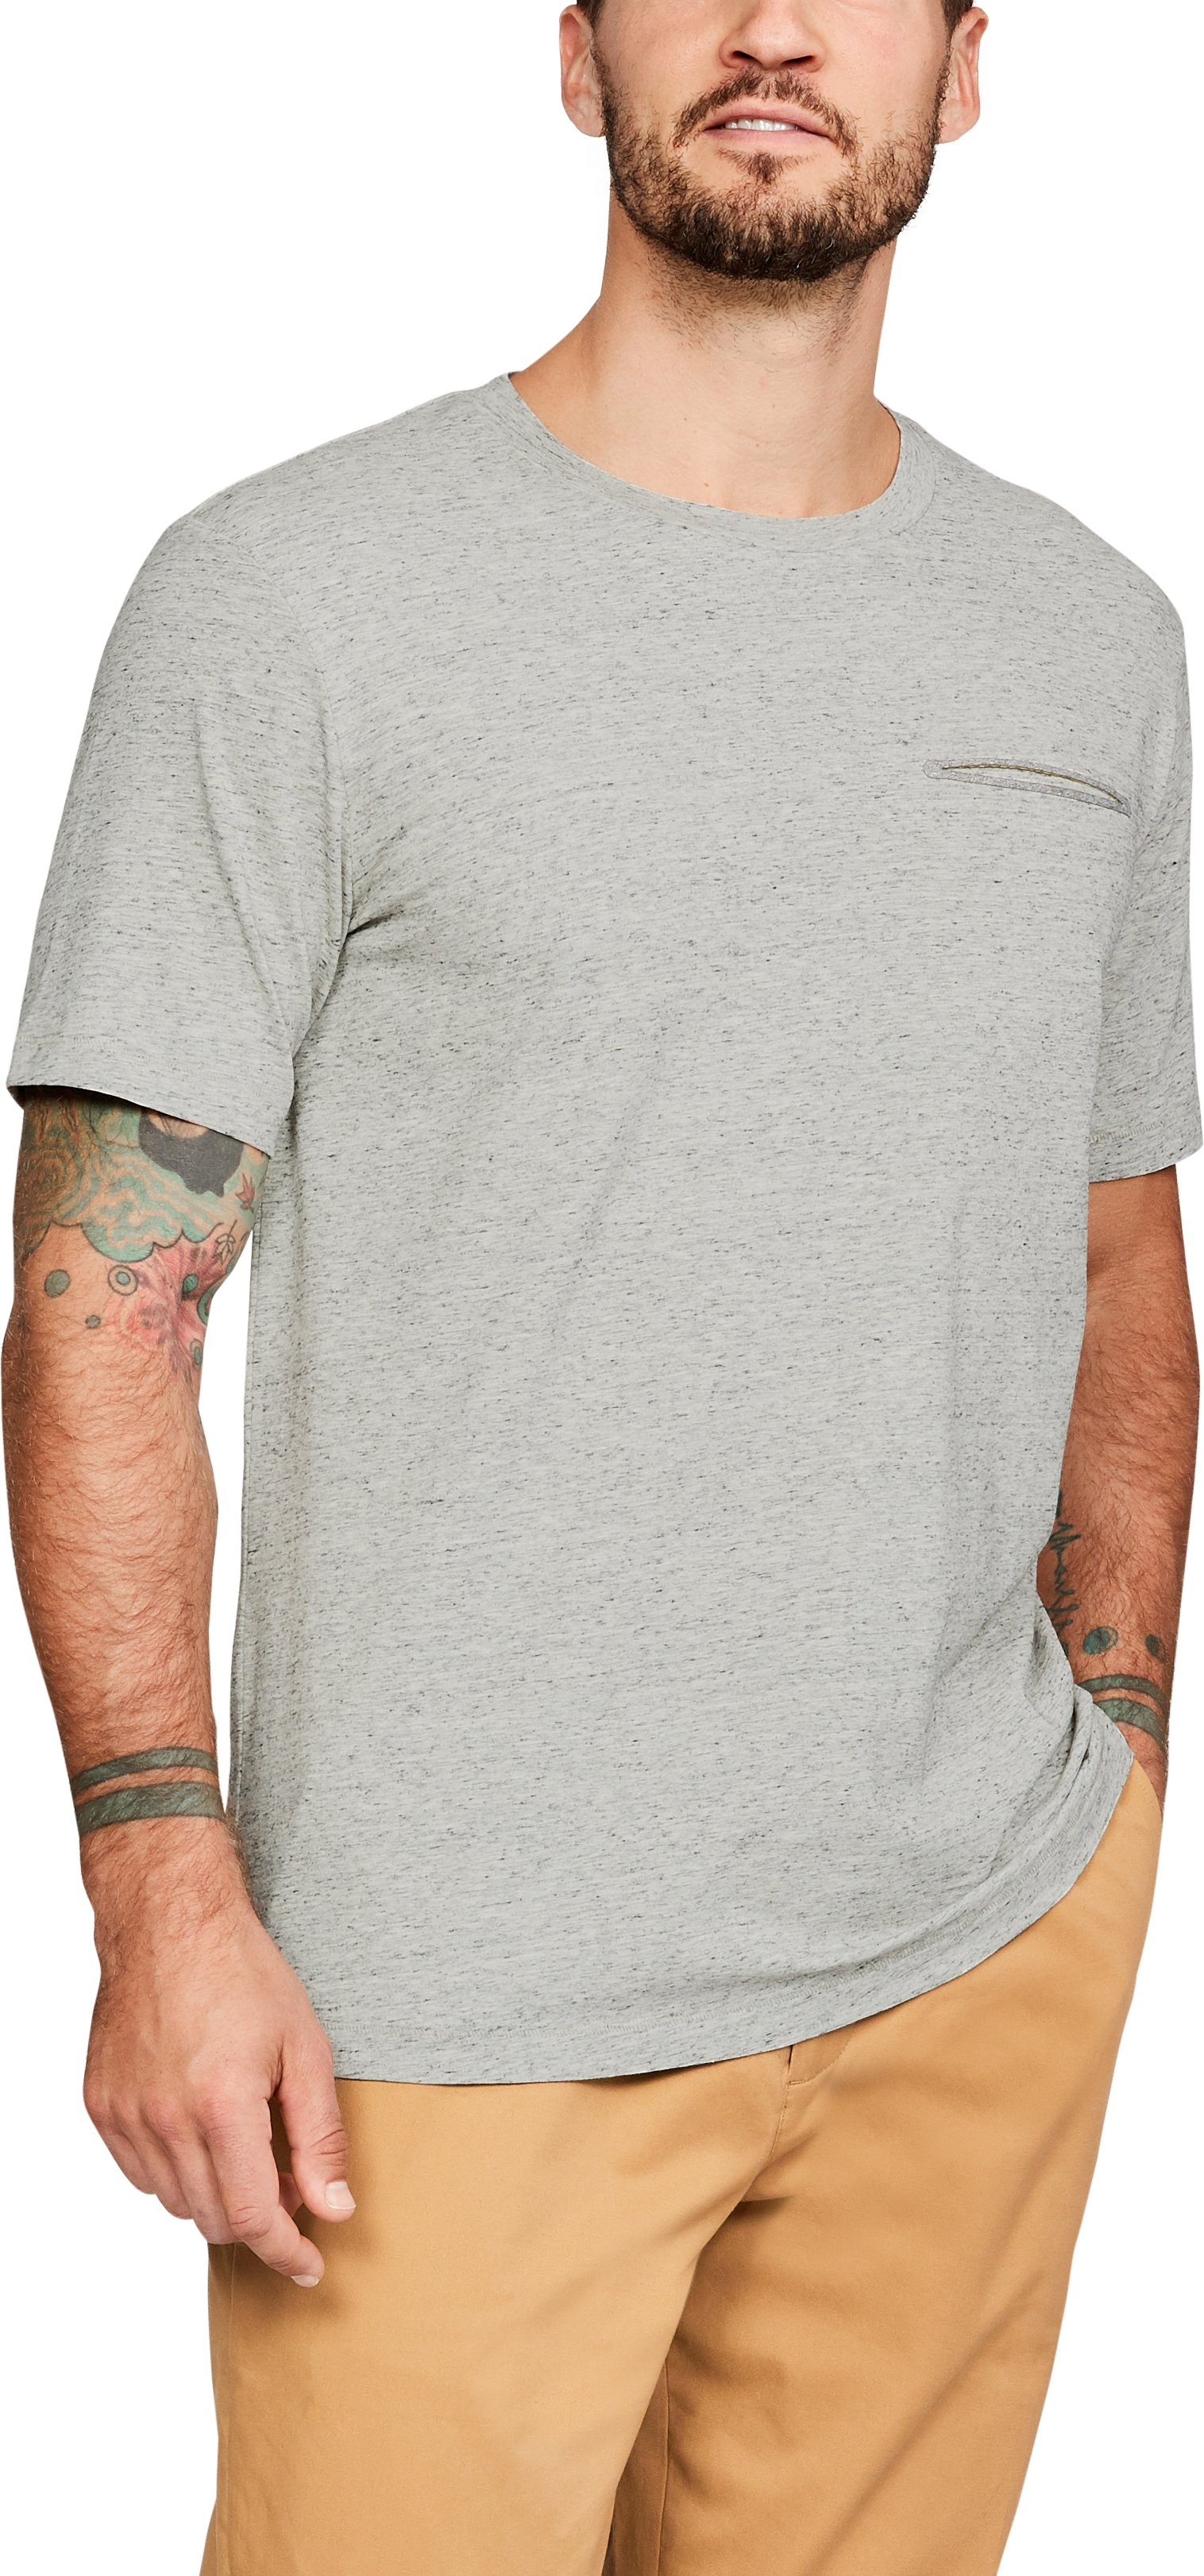 Men's UA Sportswear Prime Crew T-Shirt, UAS Speckled Heather Grey